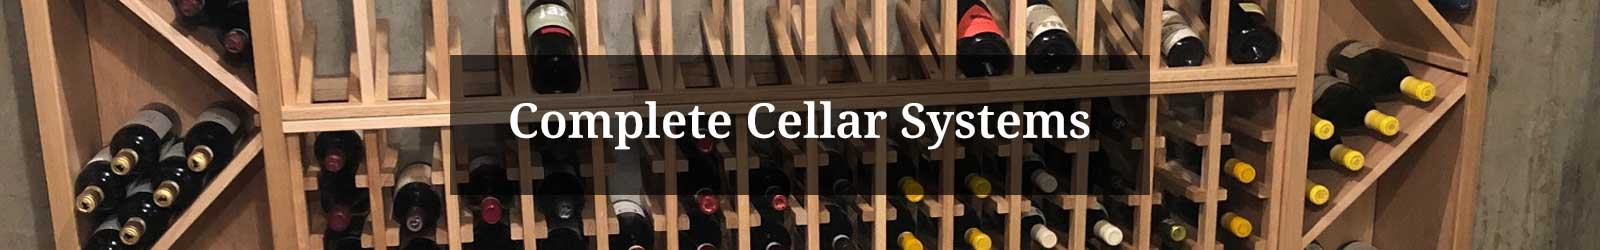 Complete Cellar Systems